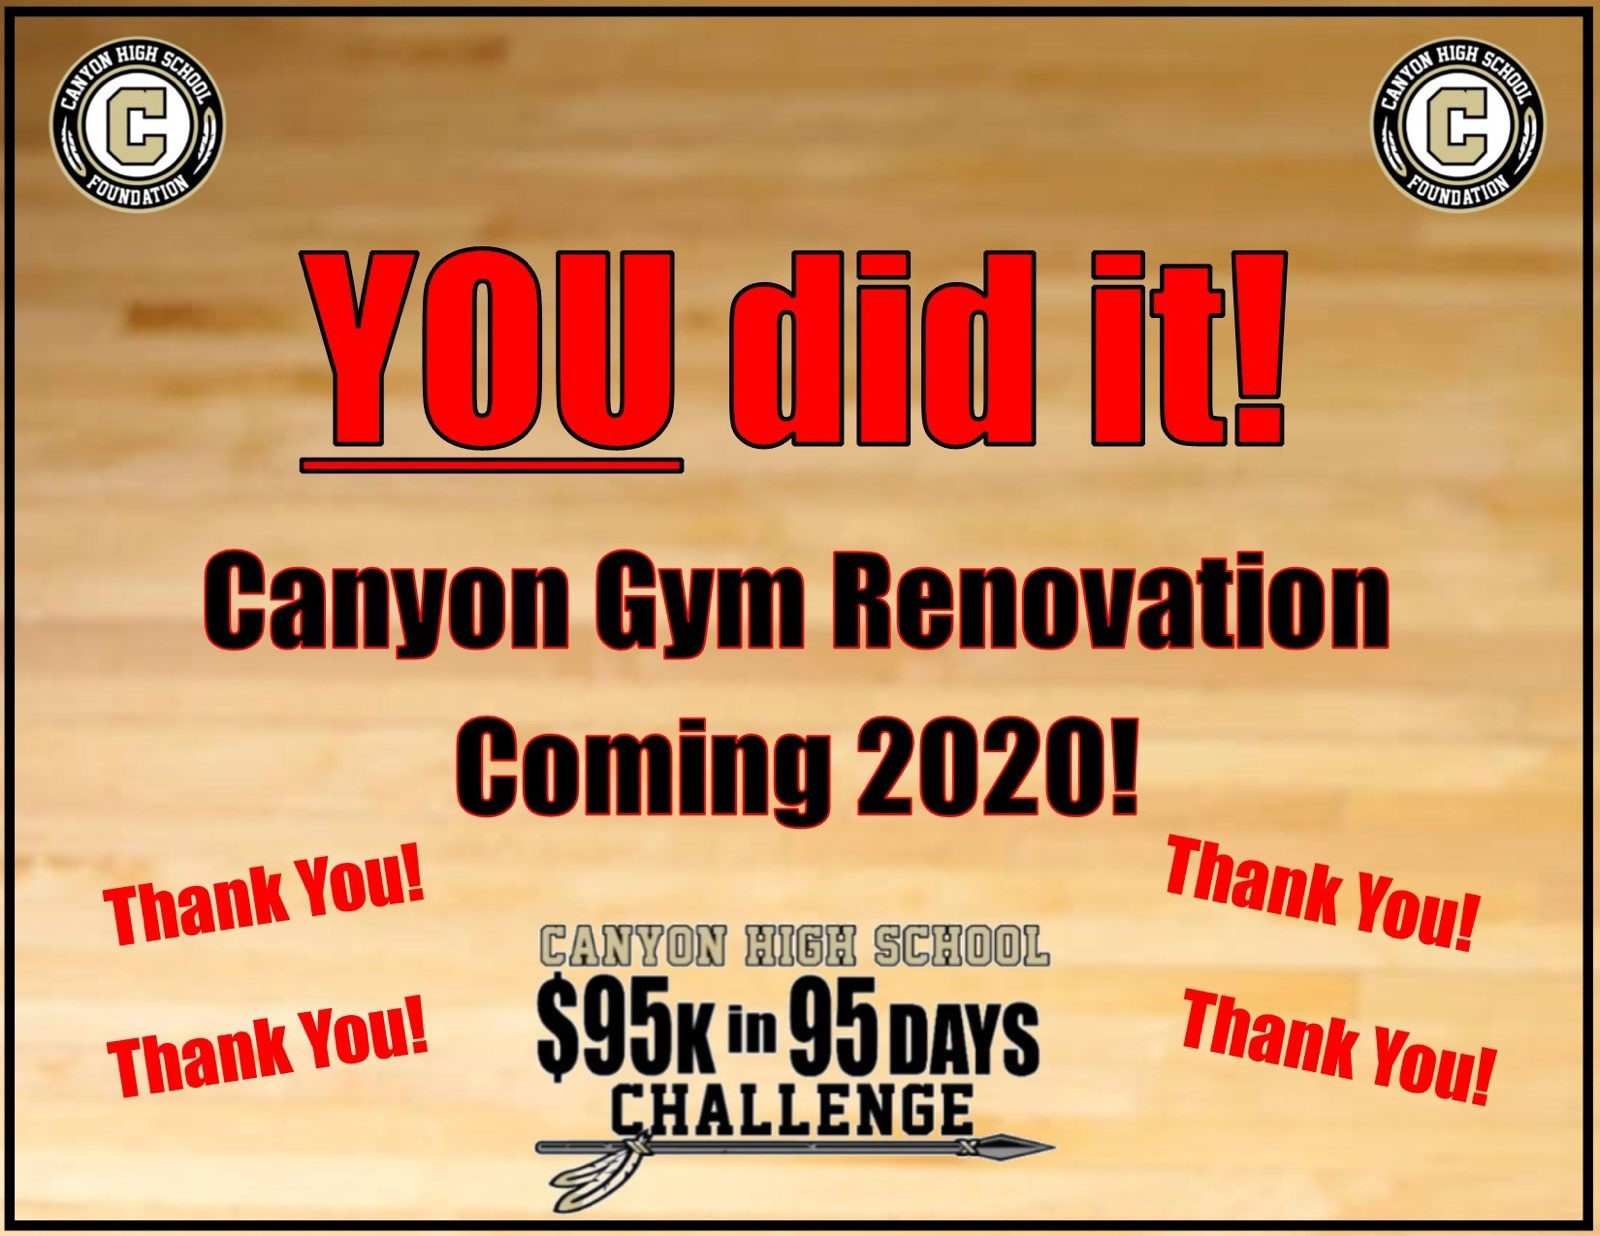 We did it! Canyon Gym Renovation coming in 2020!